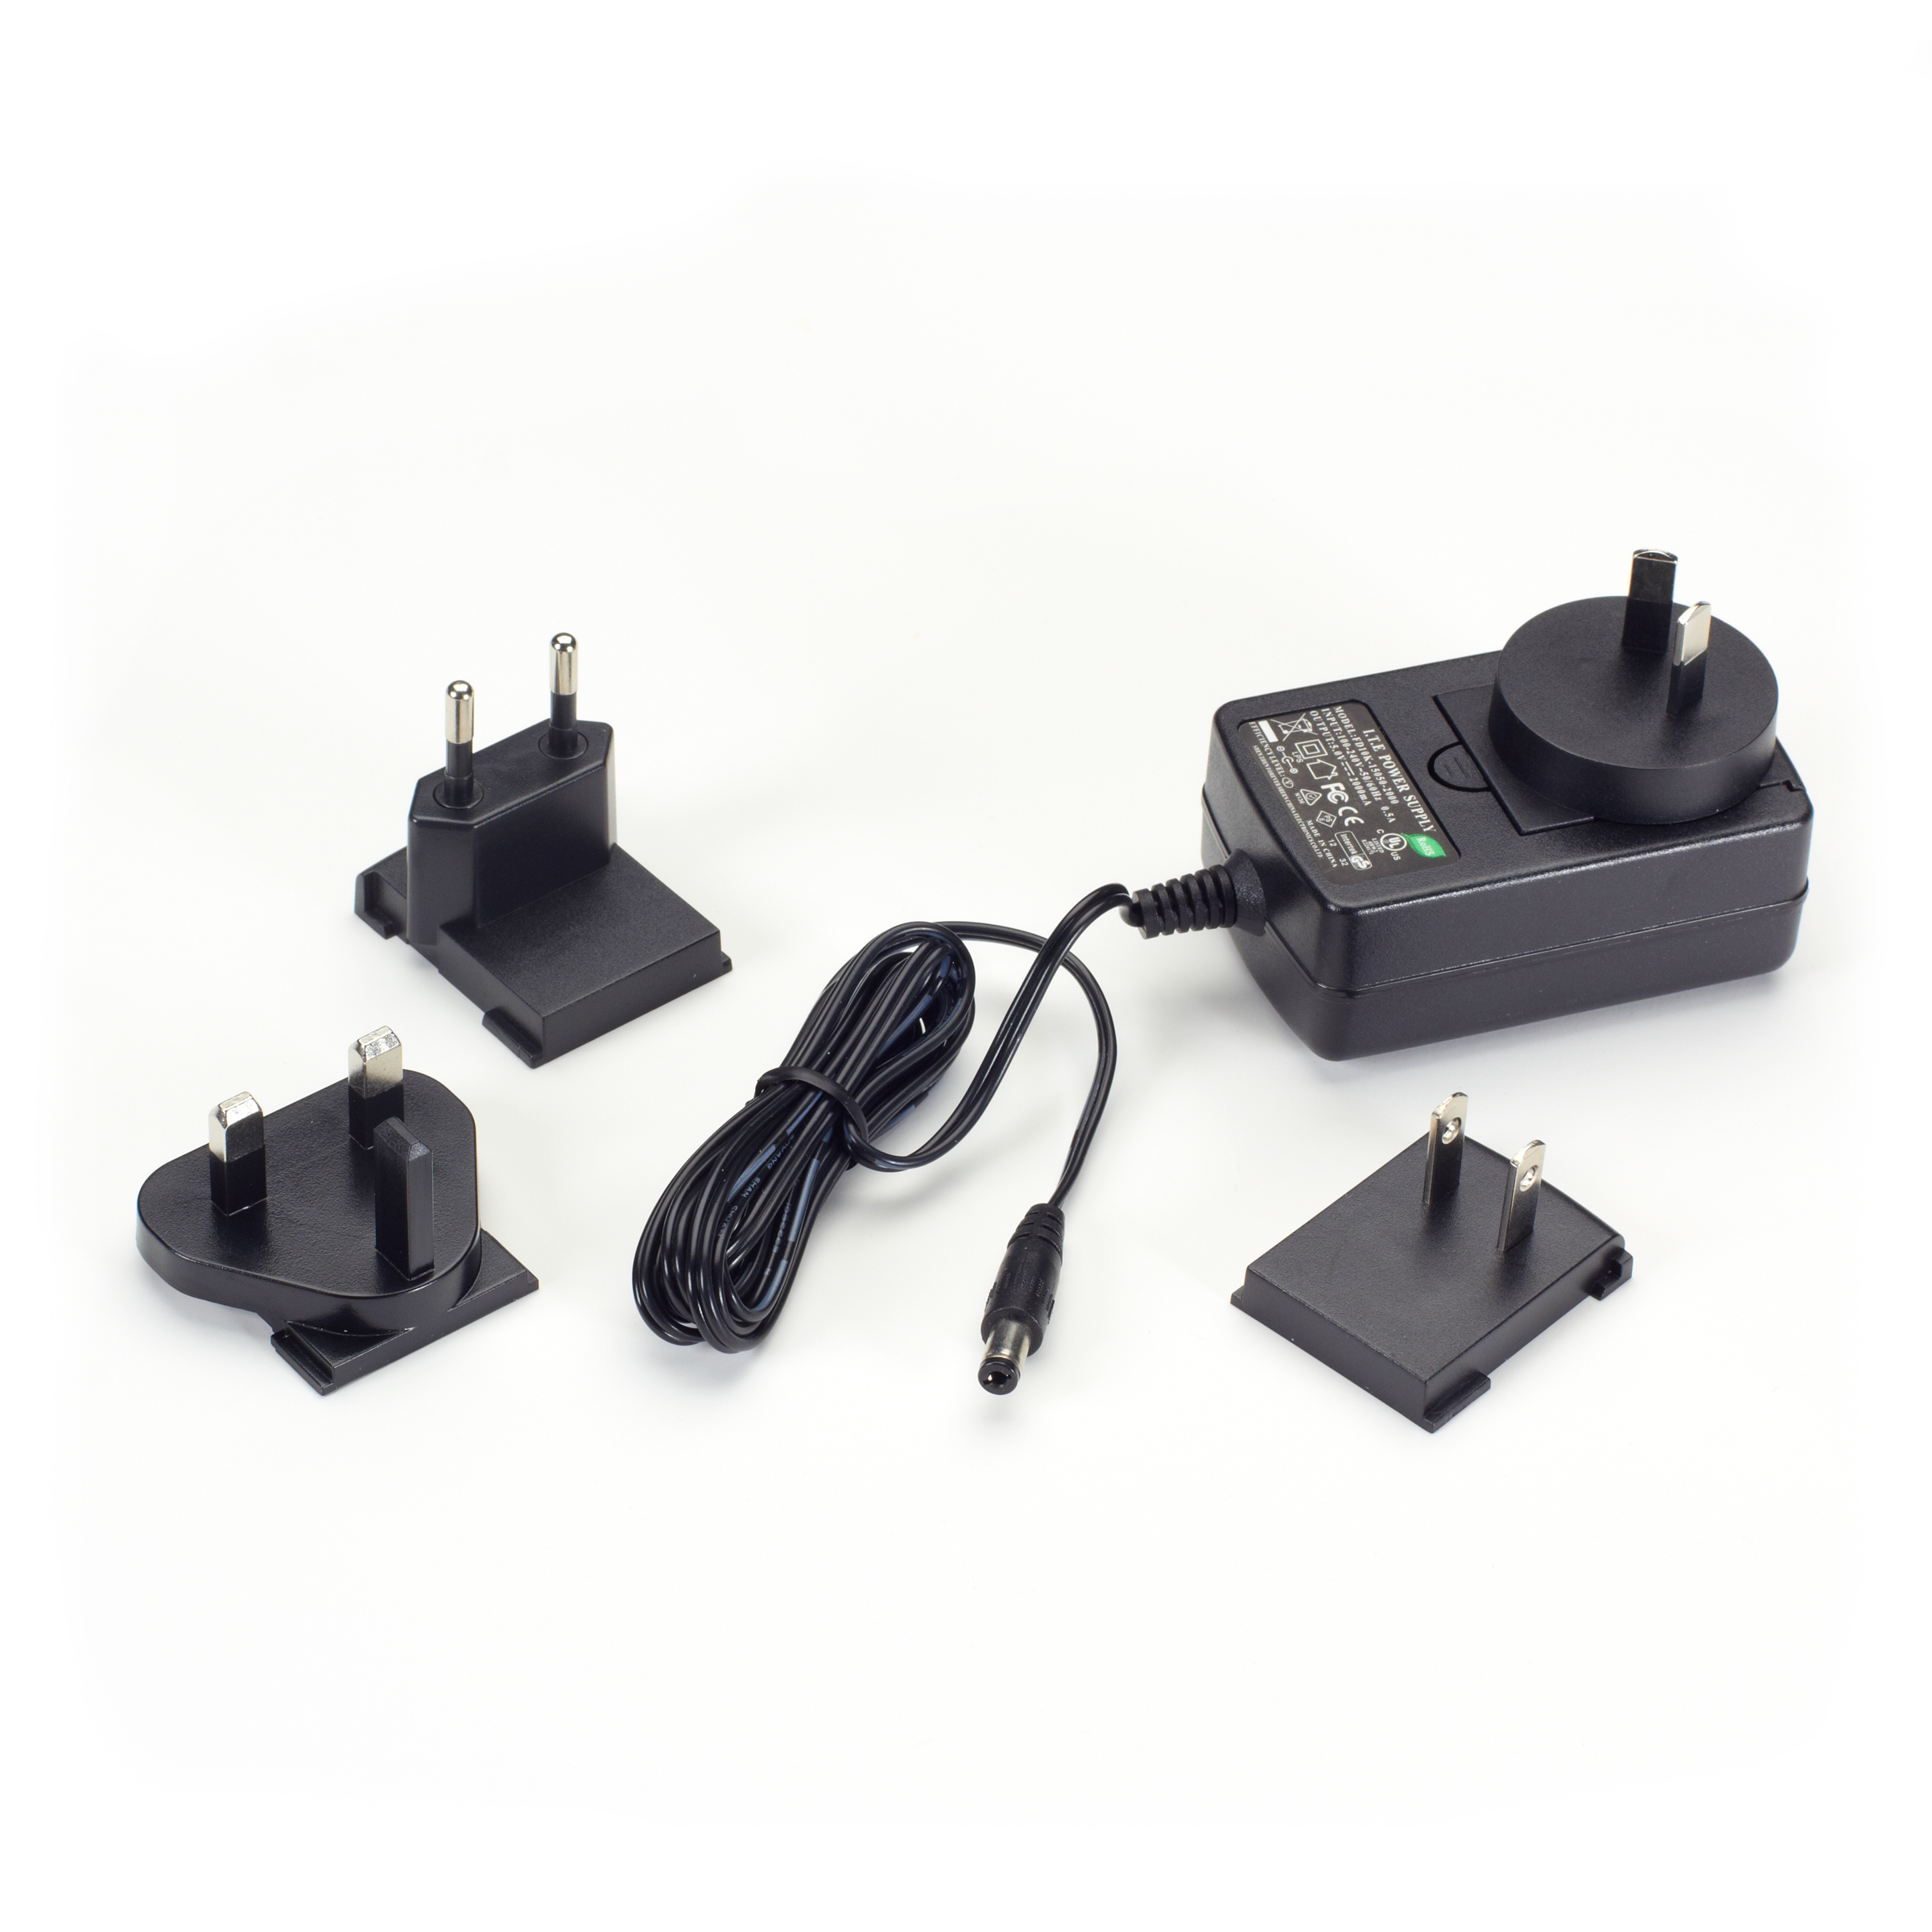 PSU for HDMI Repeater/XR HDMI and IR Extender